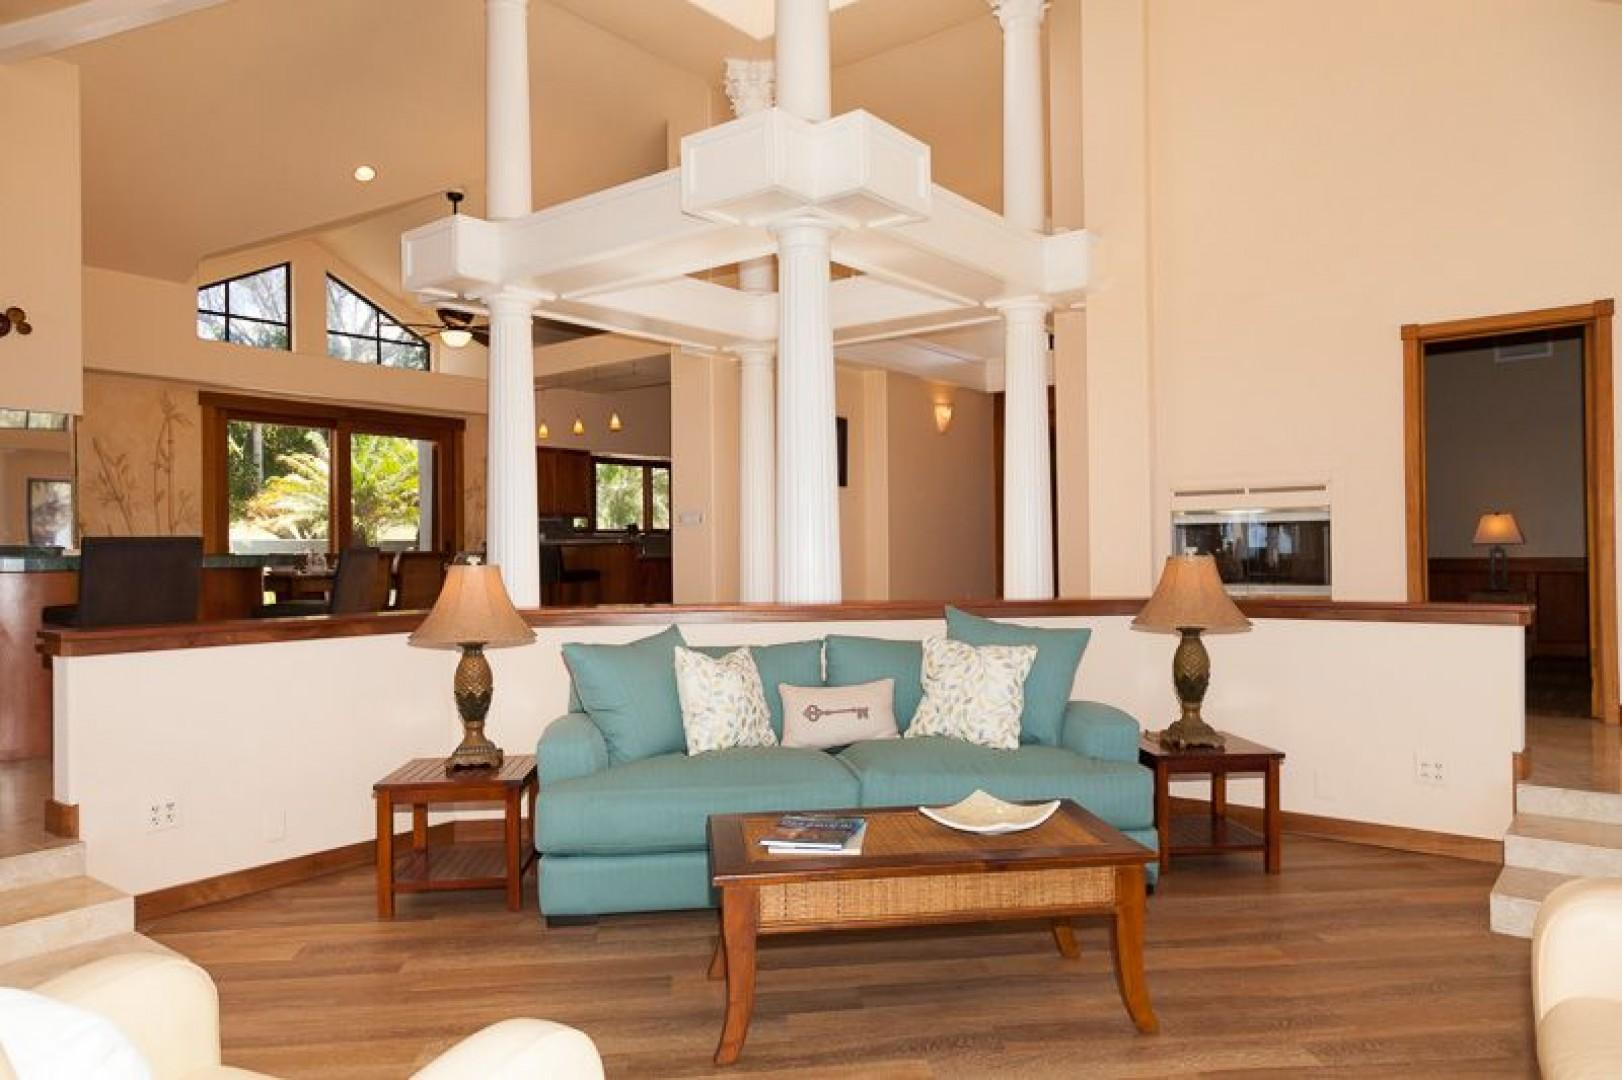 Elegant decor and comfy seating in the great room